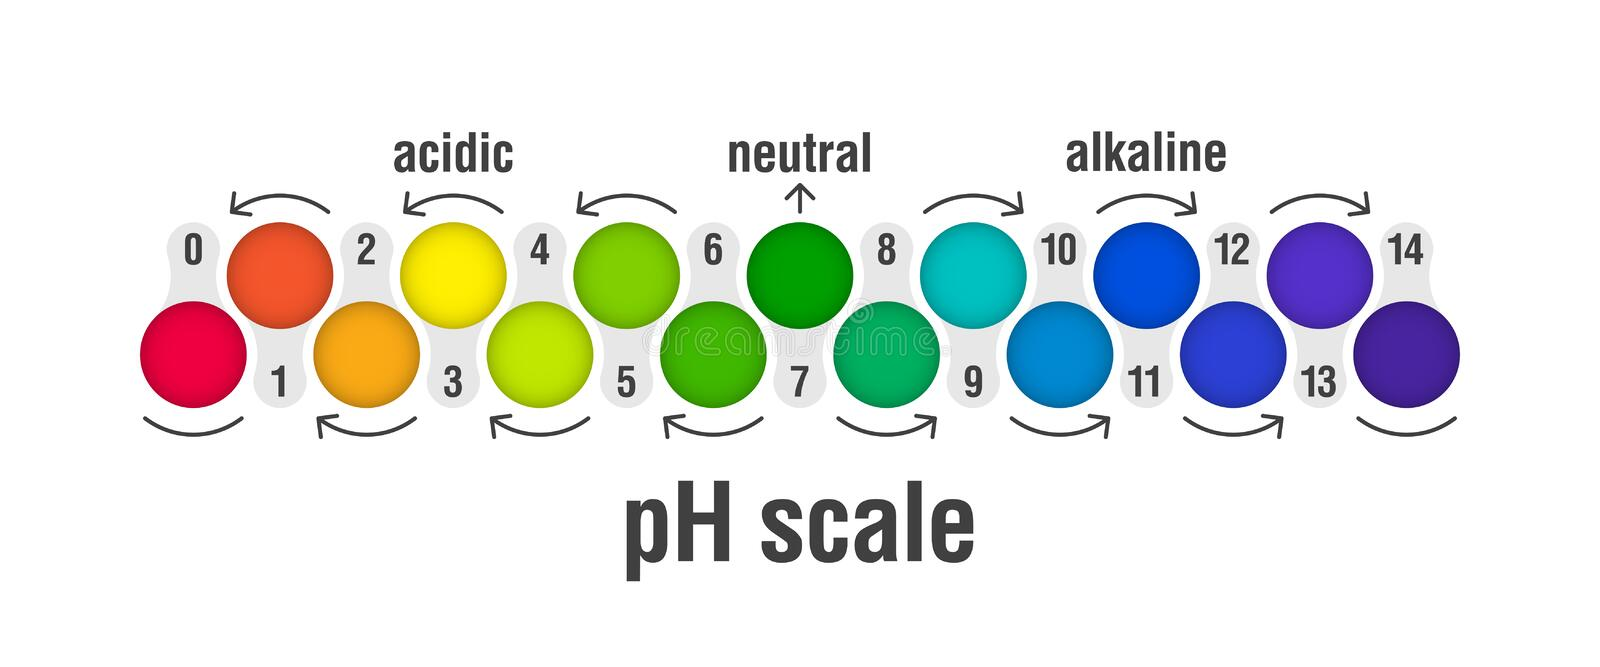 PH value scale chart vector illustration